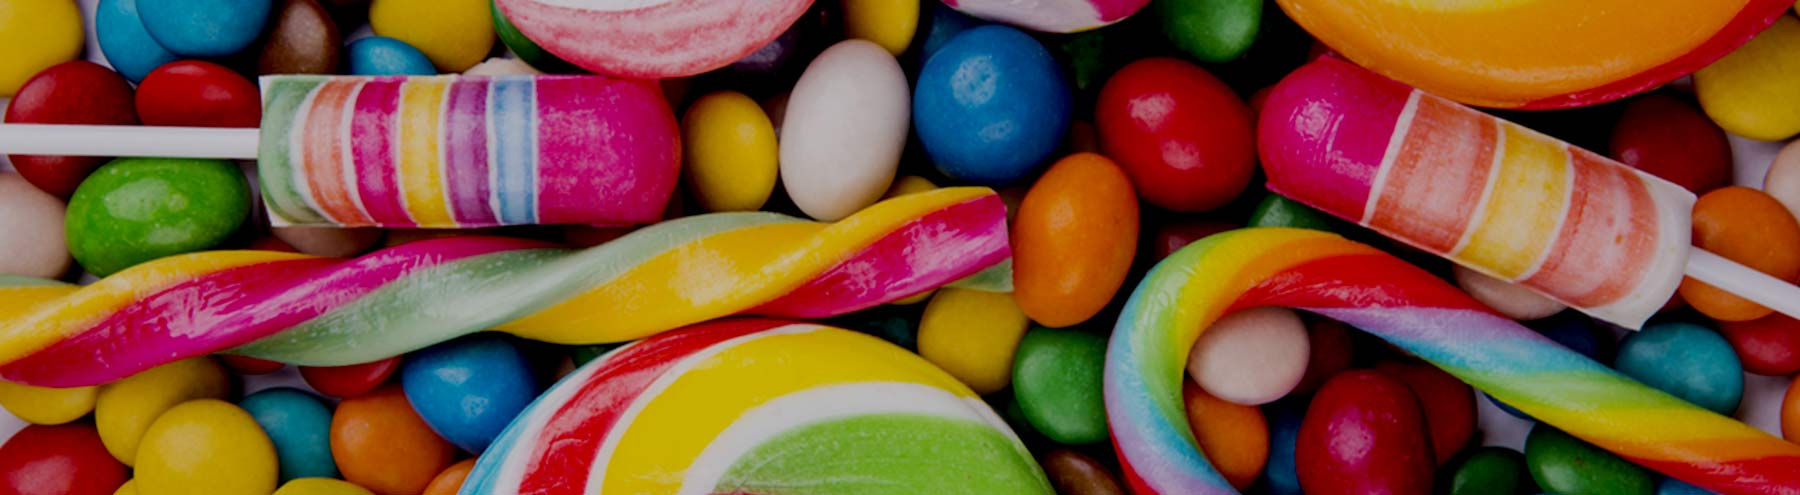 9 Things You Didn't Know About Candy